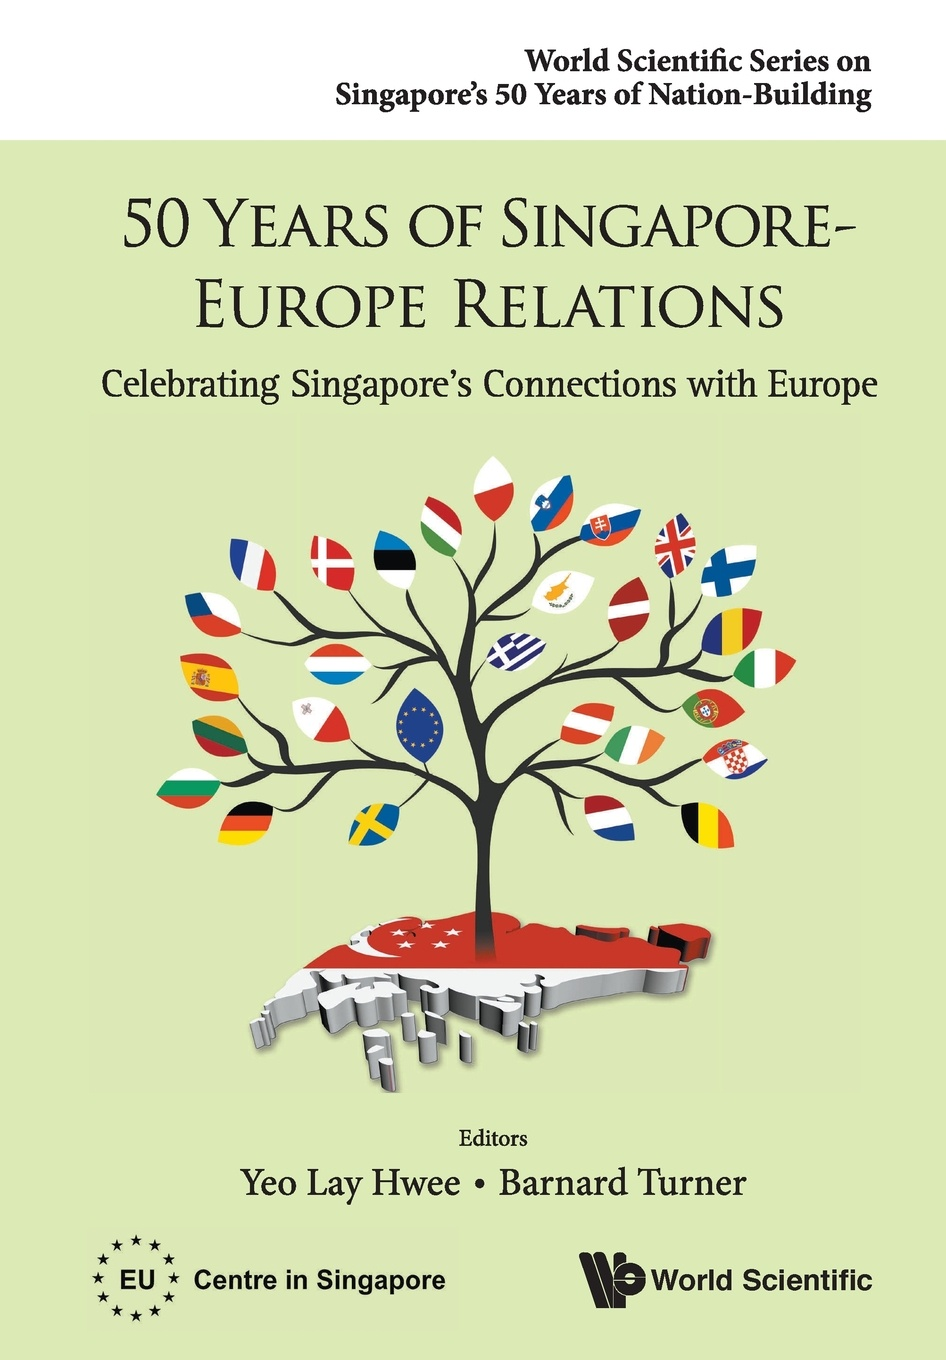 50 Years of Singapore-Europe Relations. Celebrating Singapore's Connections with Europe